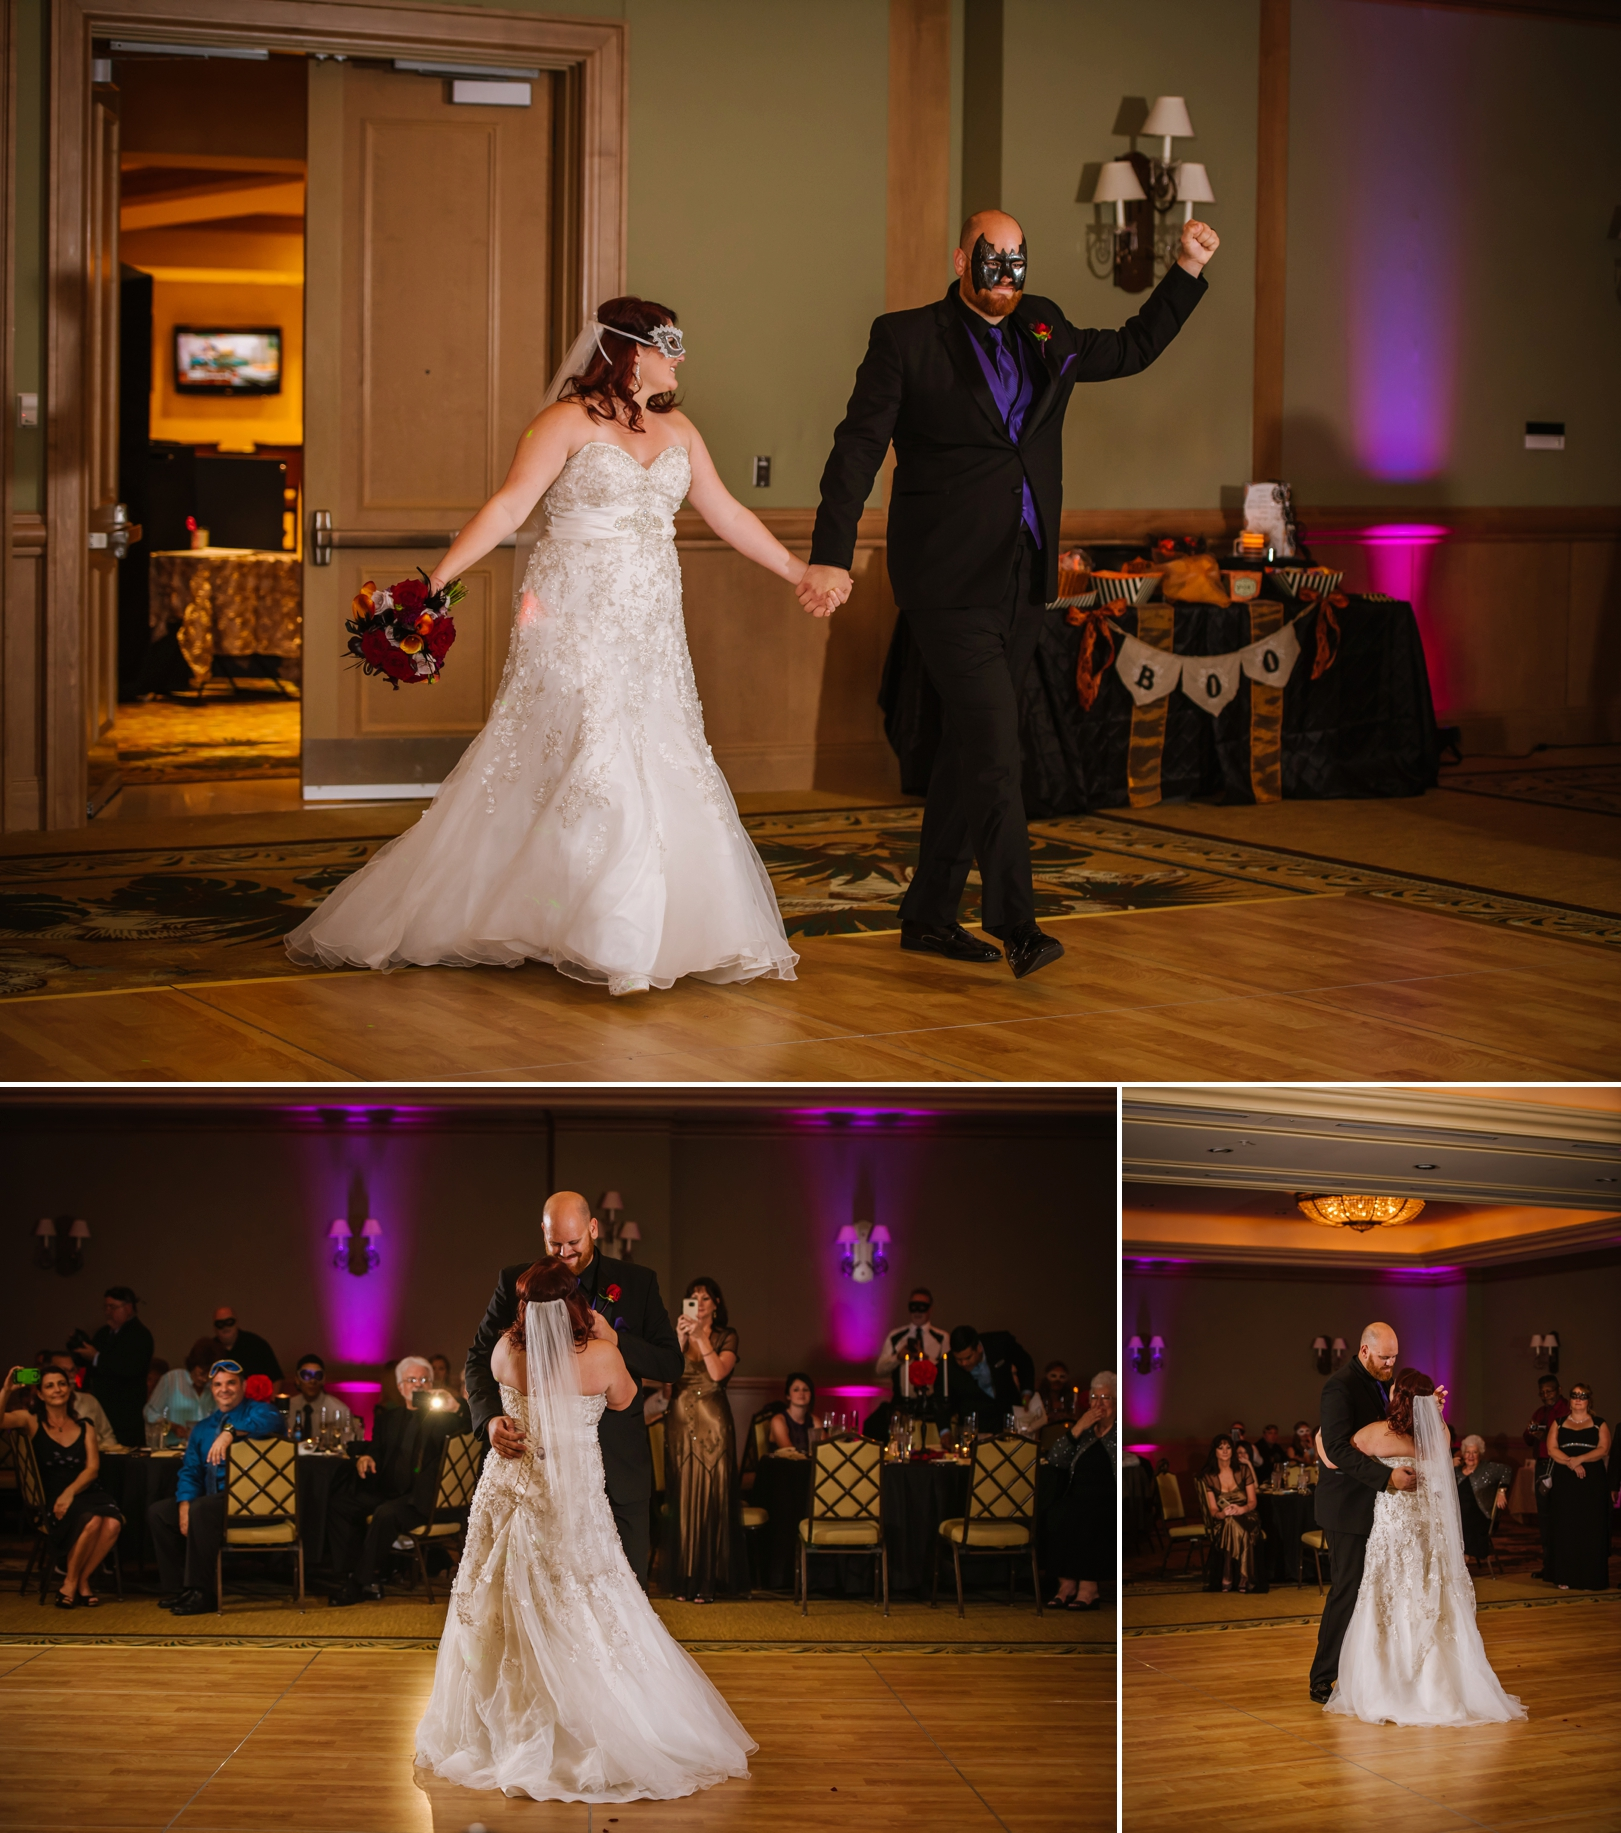 clearwater-beach-hyatt-masquerade-ballroom-themed-wedding-photograpy_0019.jpg